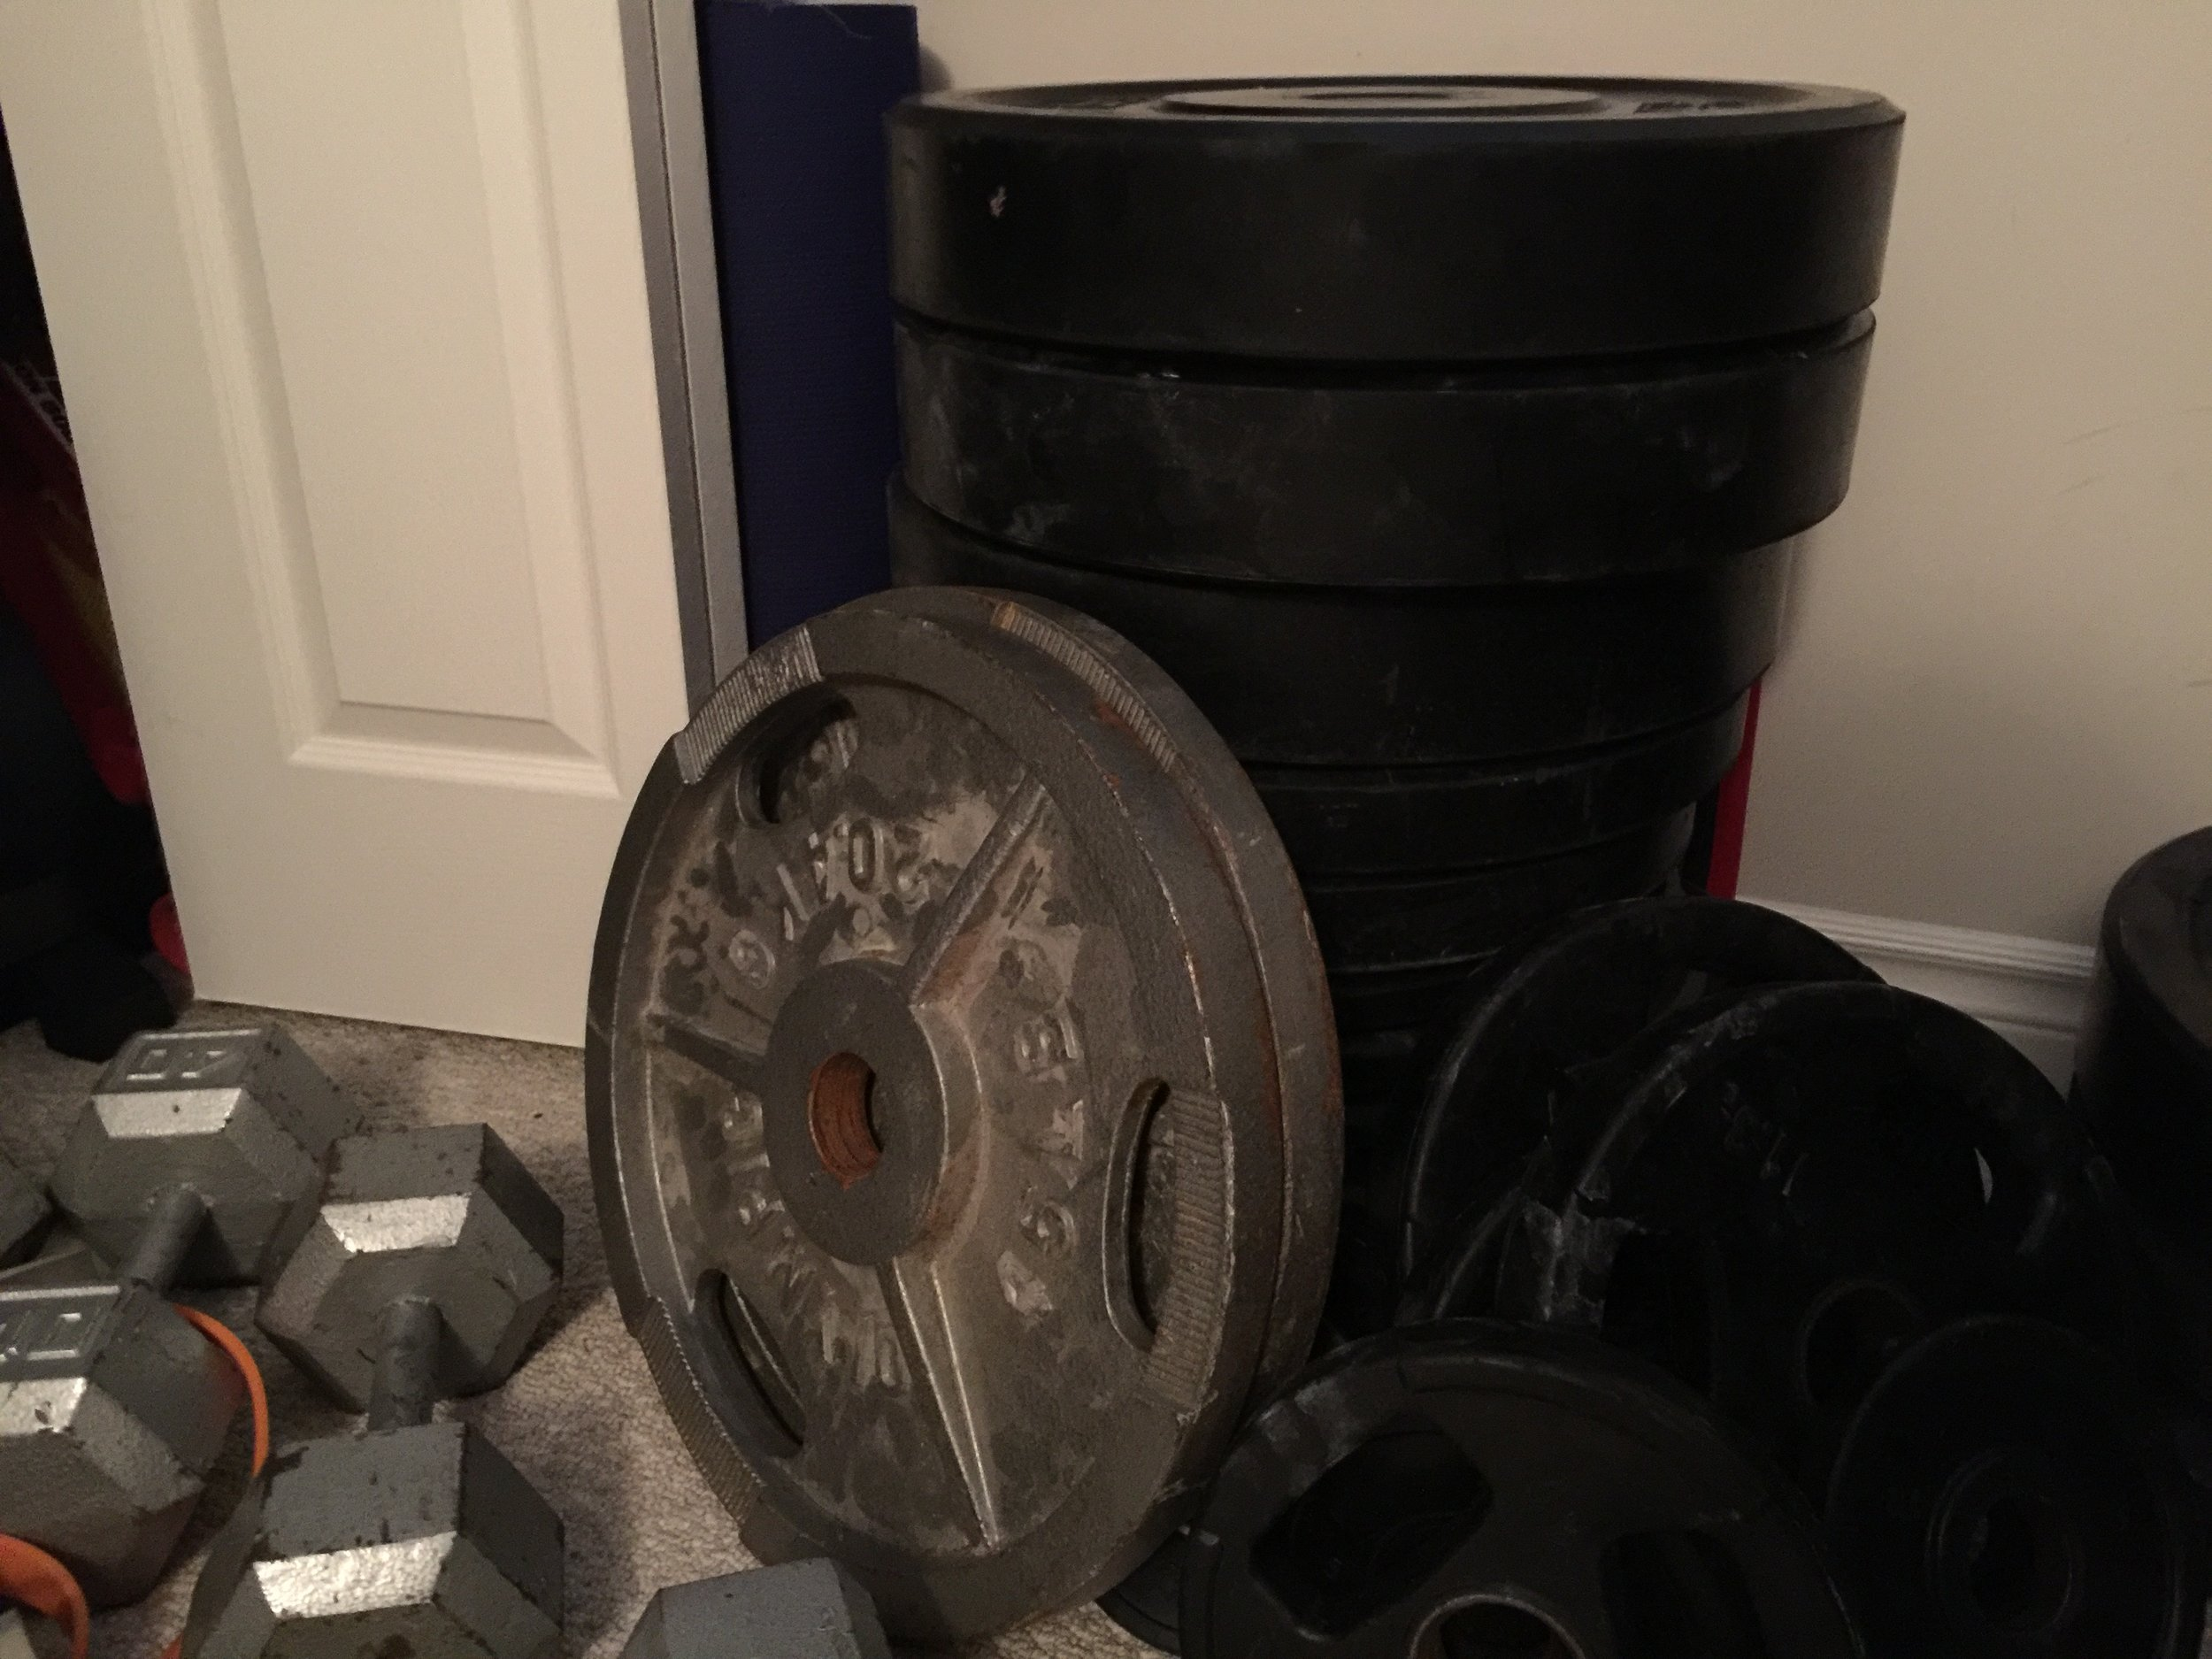 Garage Gym Humidity All You Need To Start A Home Strongman Gym Olorin Nutrition